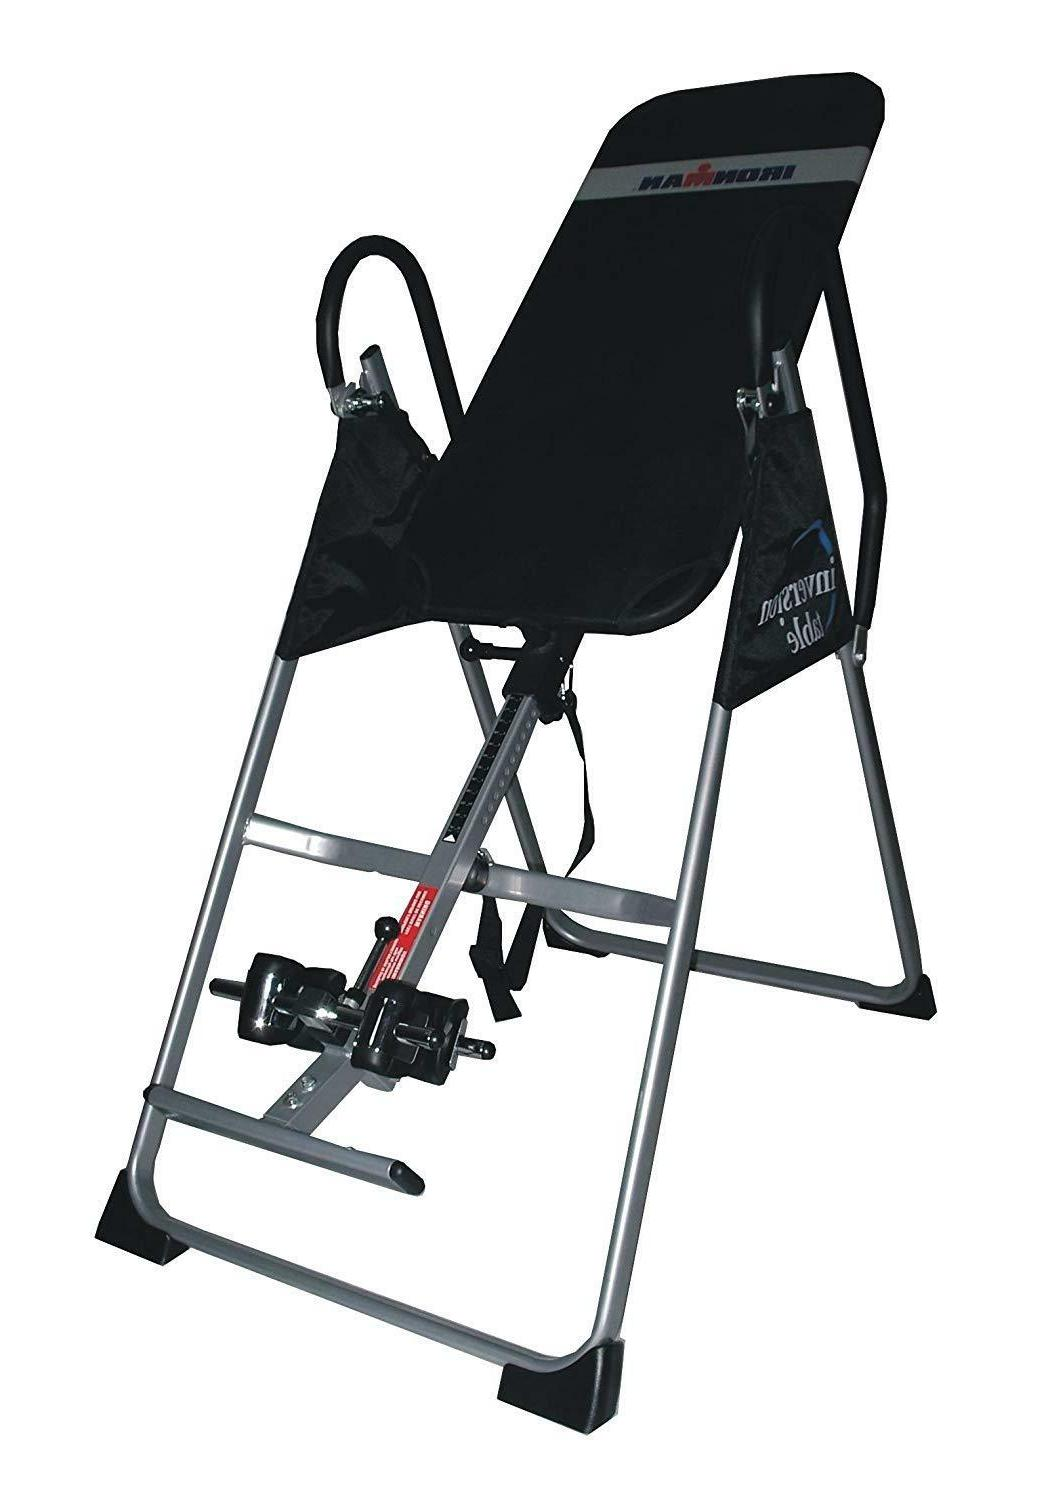 5201 gravity 1000 inversion table health fitness